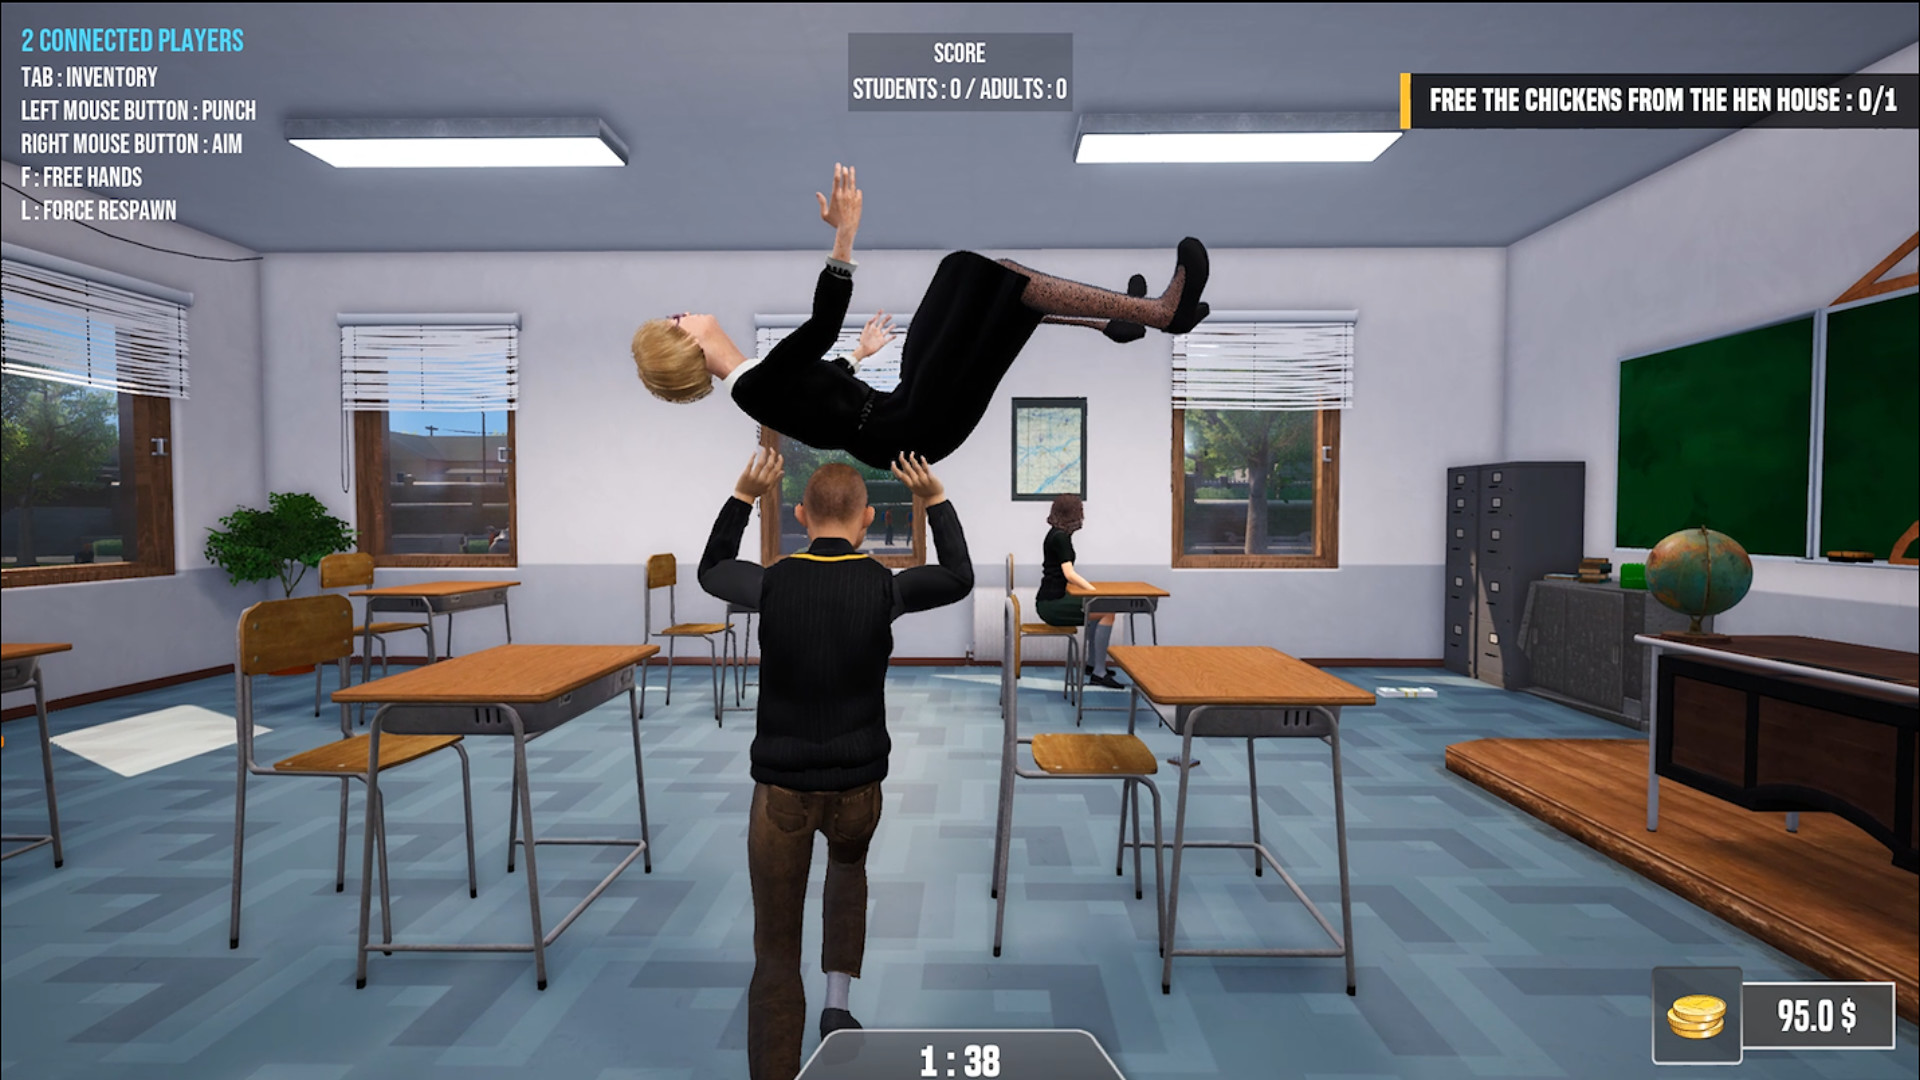 Bad Guys at School Screenshot 2